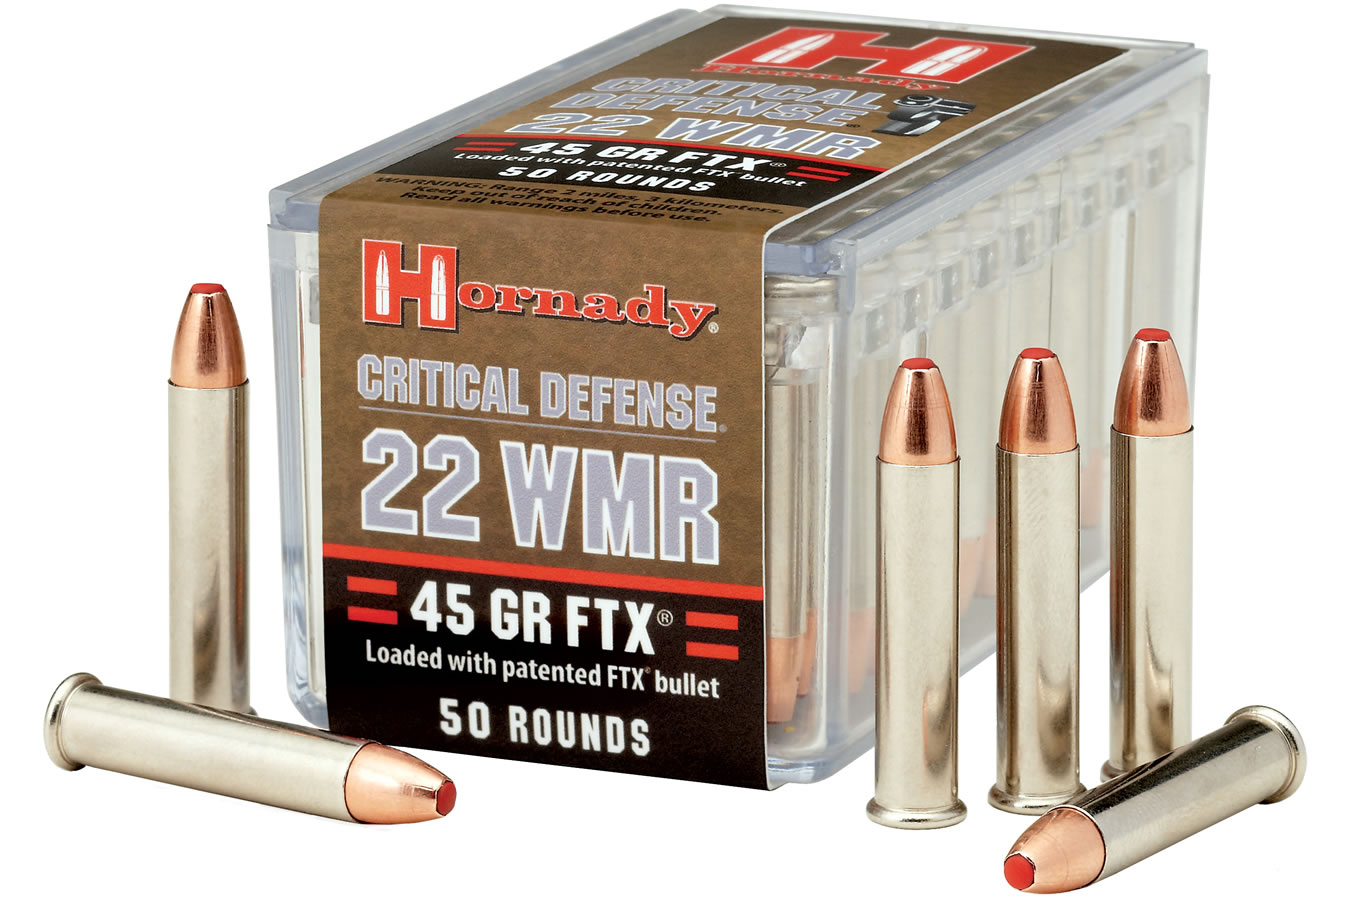 22 WMR 45 GR FTX CRITICAL DEFENSE 50/BOX